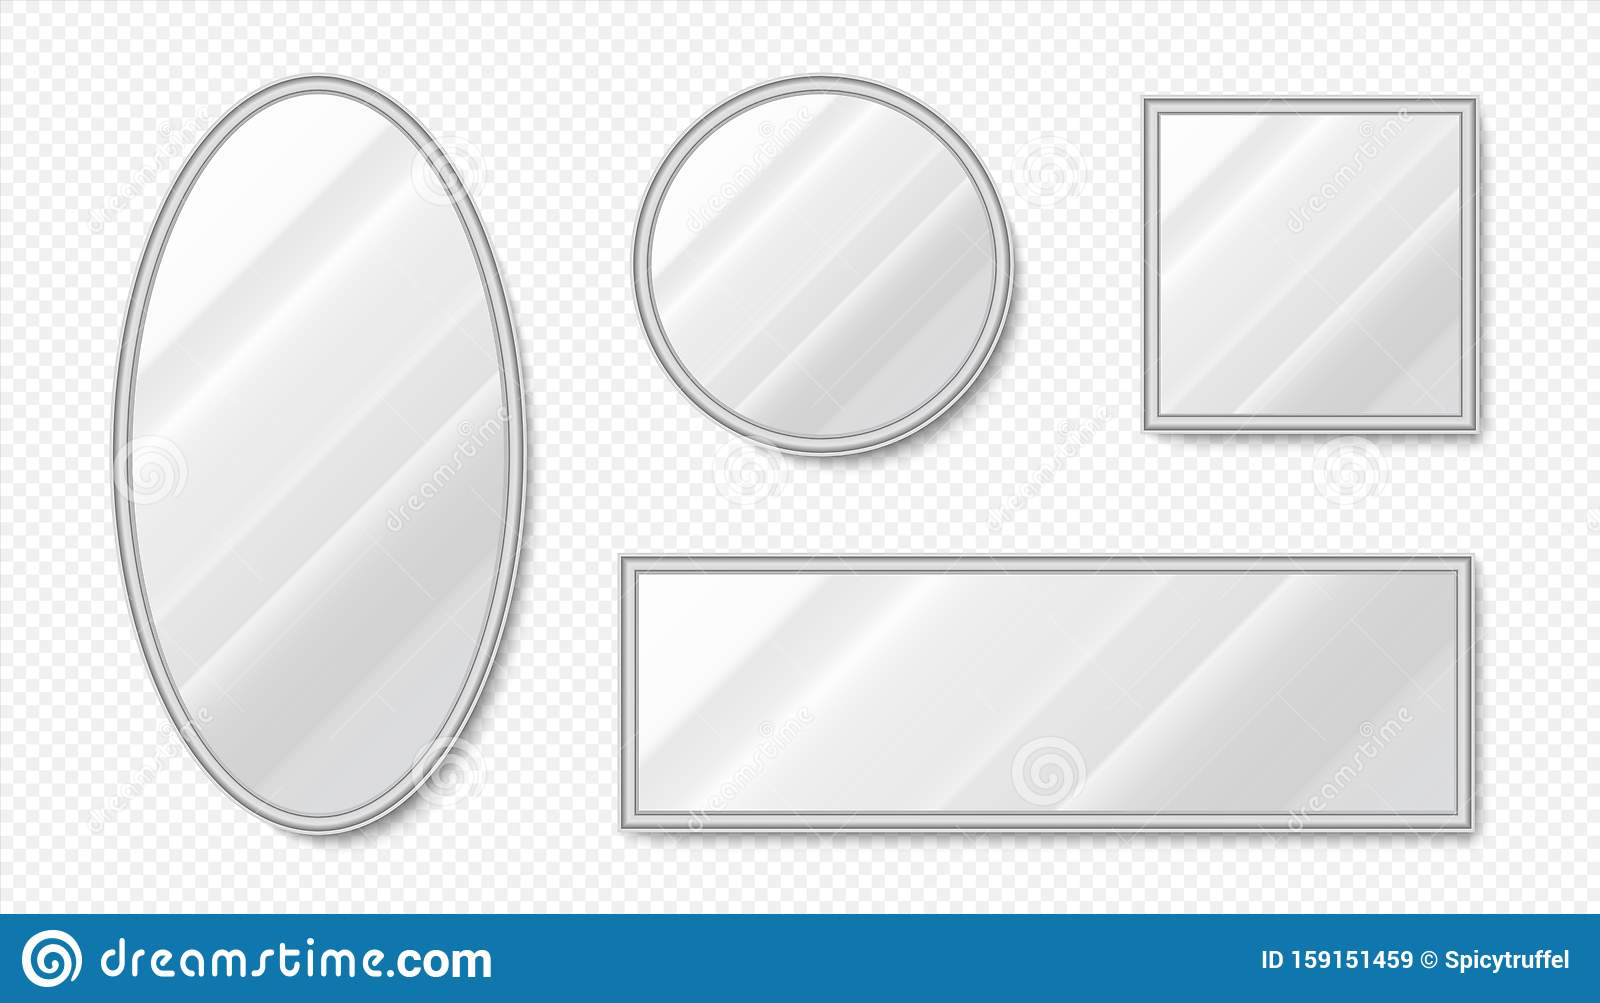 Realistic Mirrors Empty Oval And Square Mirrors With Metal